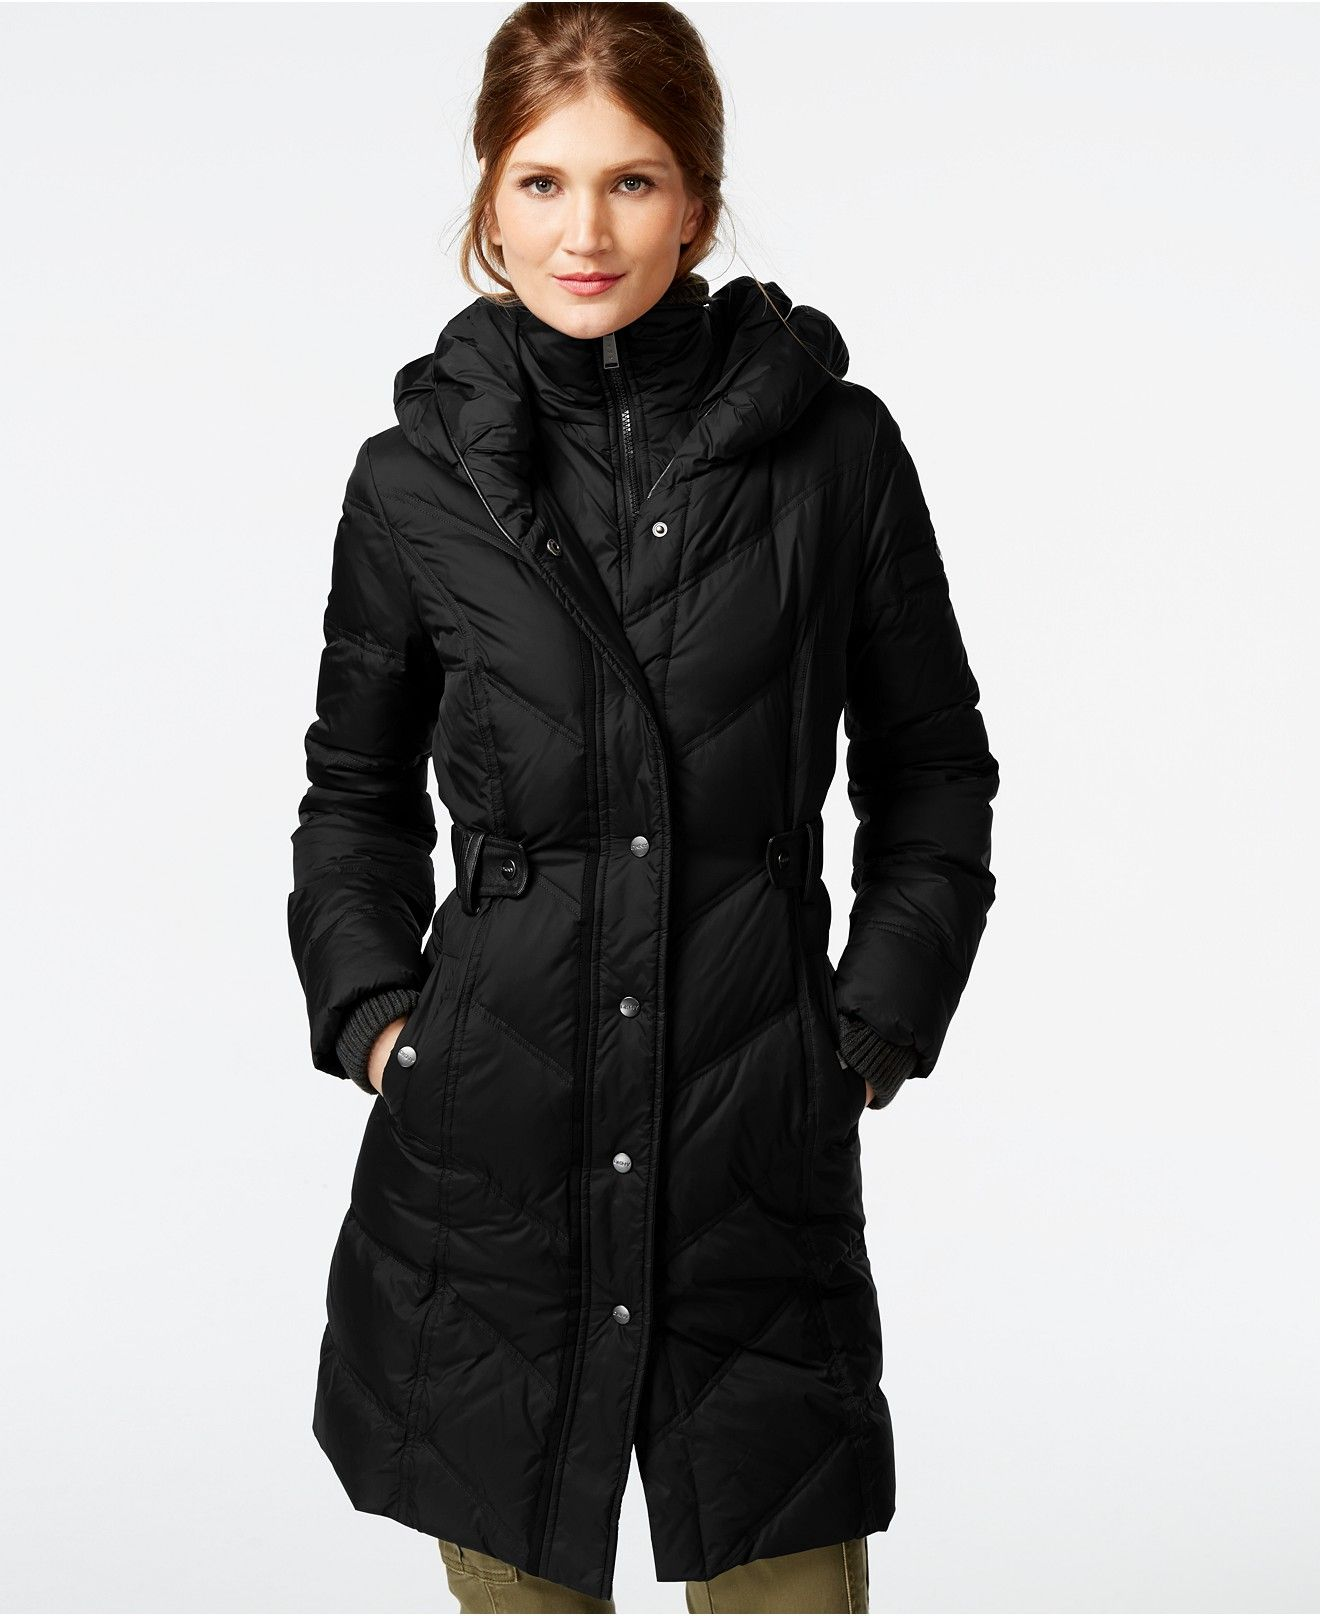 968b3295900 DKNY Faux-Leather-Trim Quilted Down Coat - Coats - Women - Macy s ...